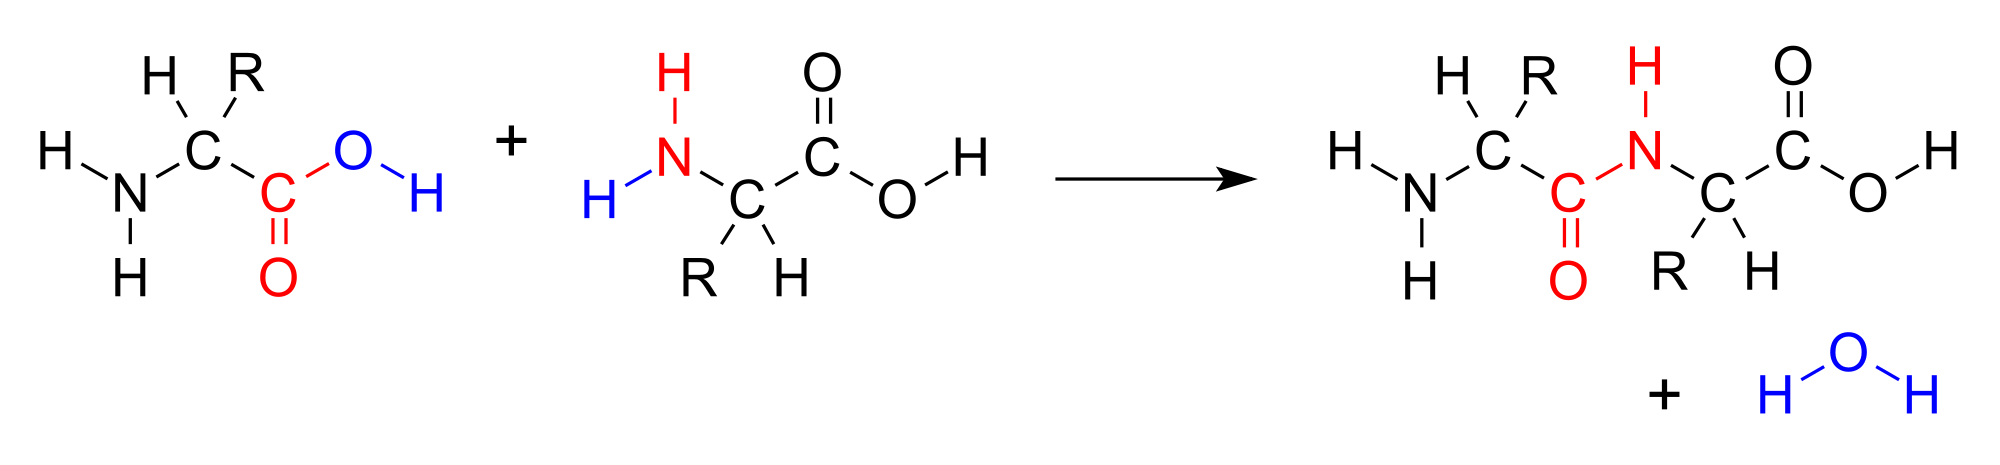 Structure of a generic condensation reaction